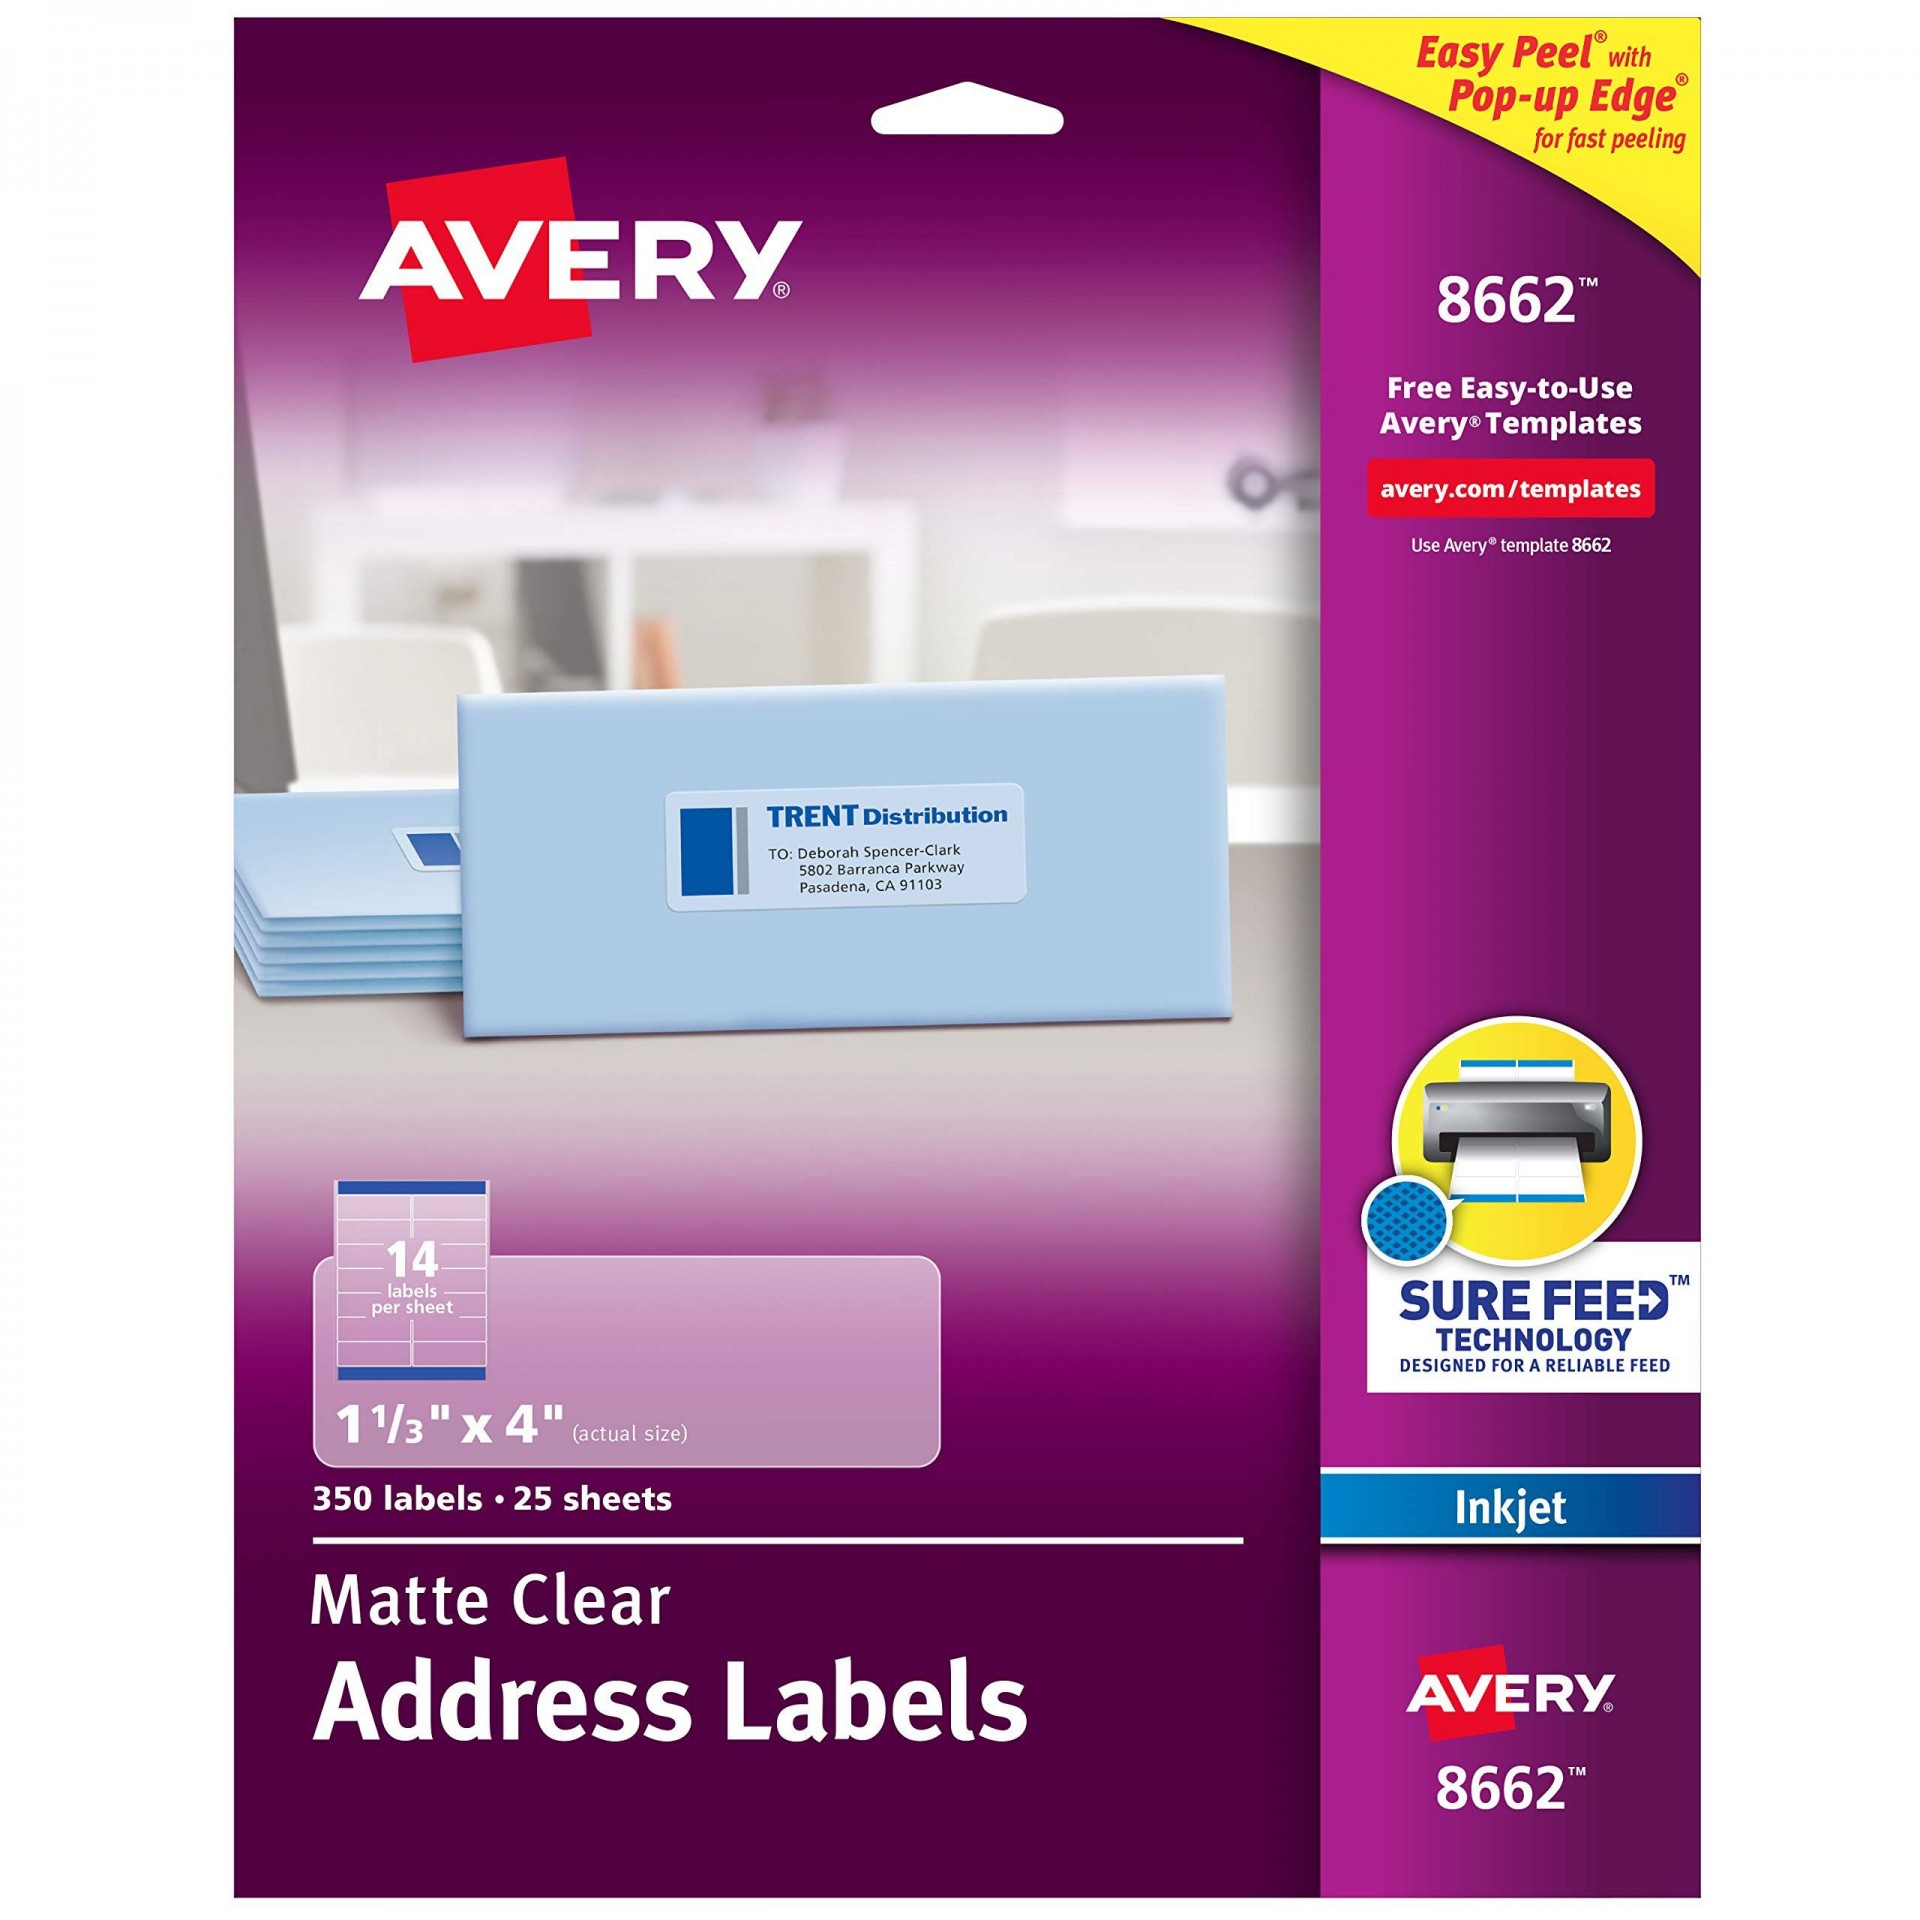 000 Wonderful Free Avery Addres Label Template For Mac High Def  51601920